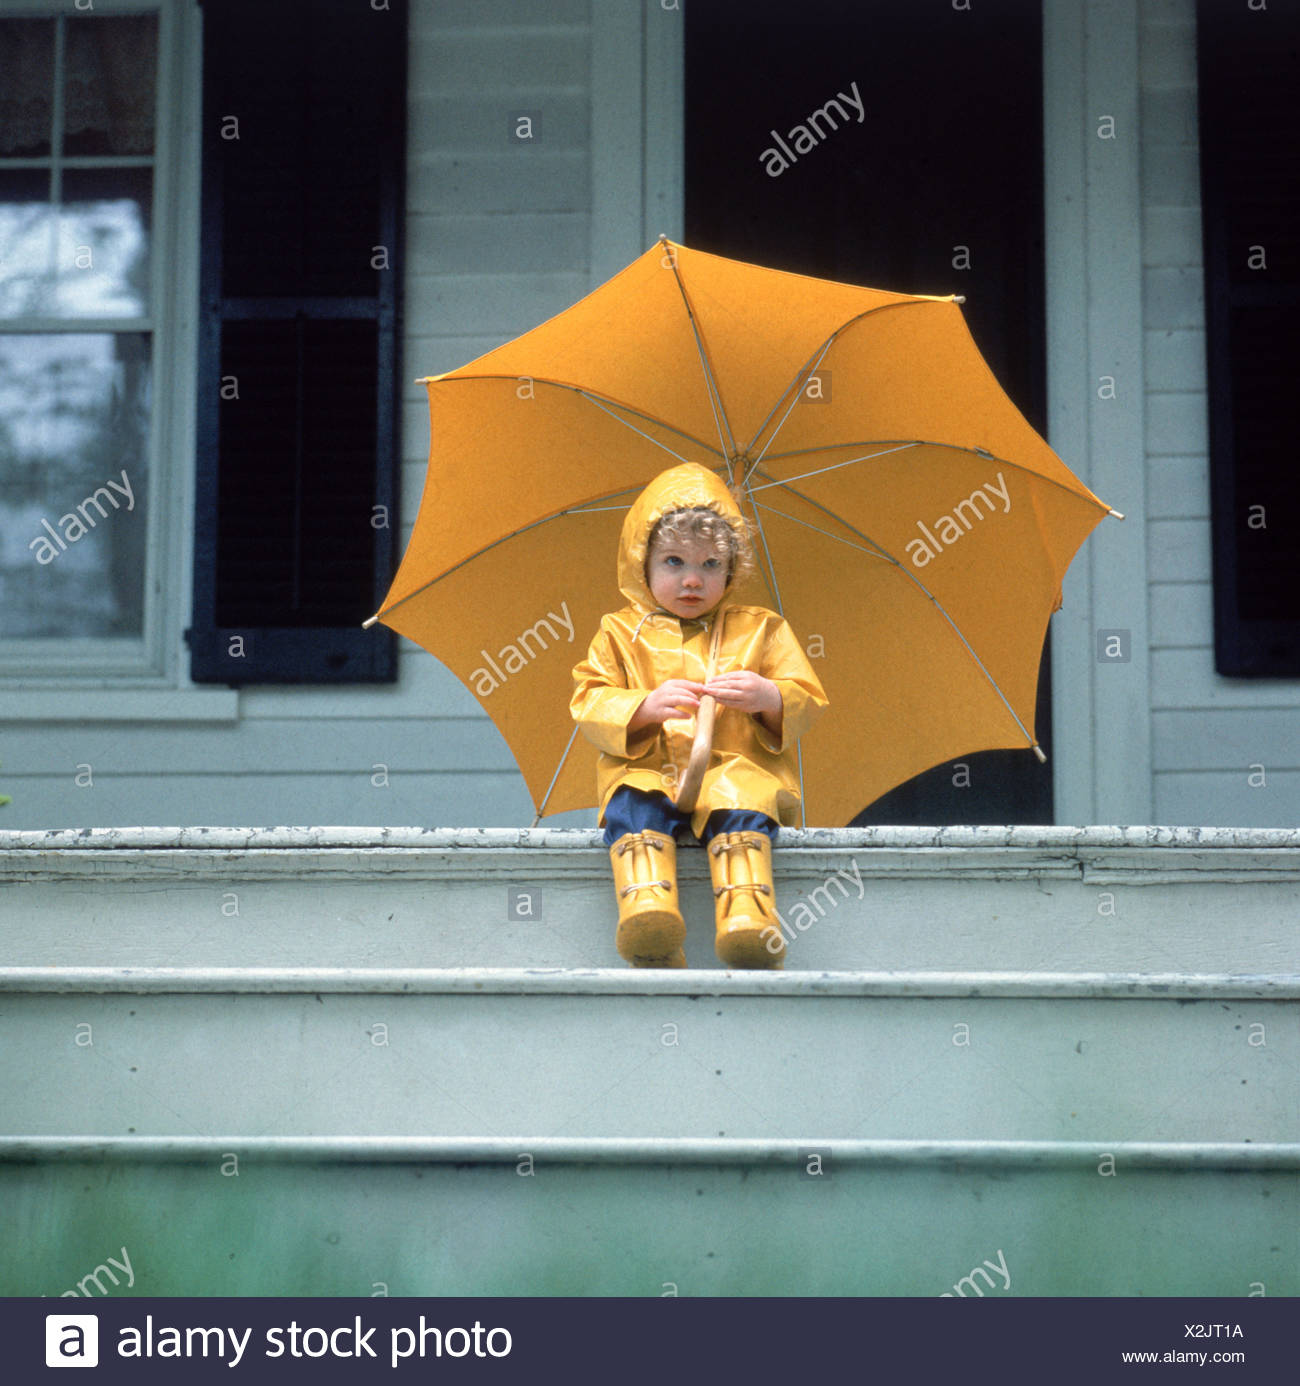 Front Porch Of Yellow House Stock Photo: Girl Holding Umbrella Houses Stock Photos & Girl Holding